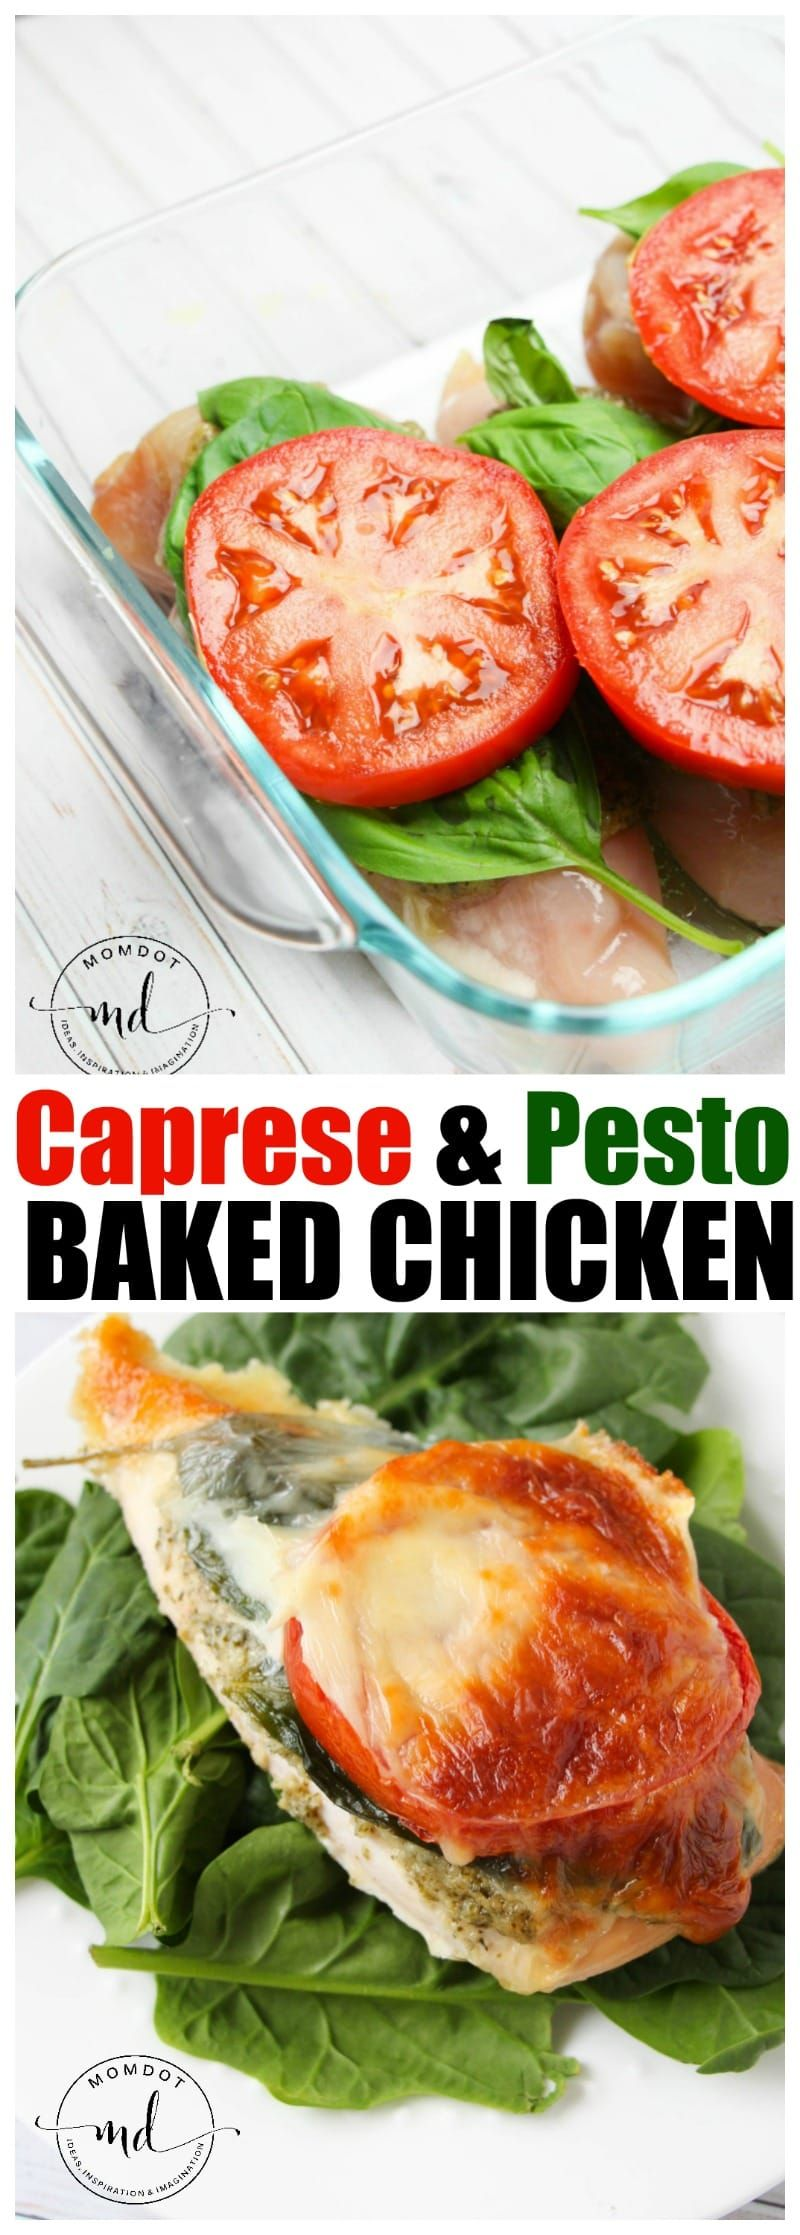 Baked Caprese Pesto Chicken, 21 Day Fix Friendly, Keto Friendly, Clean Eating Recipe